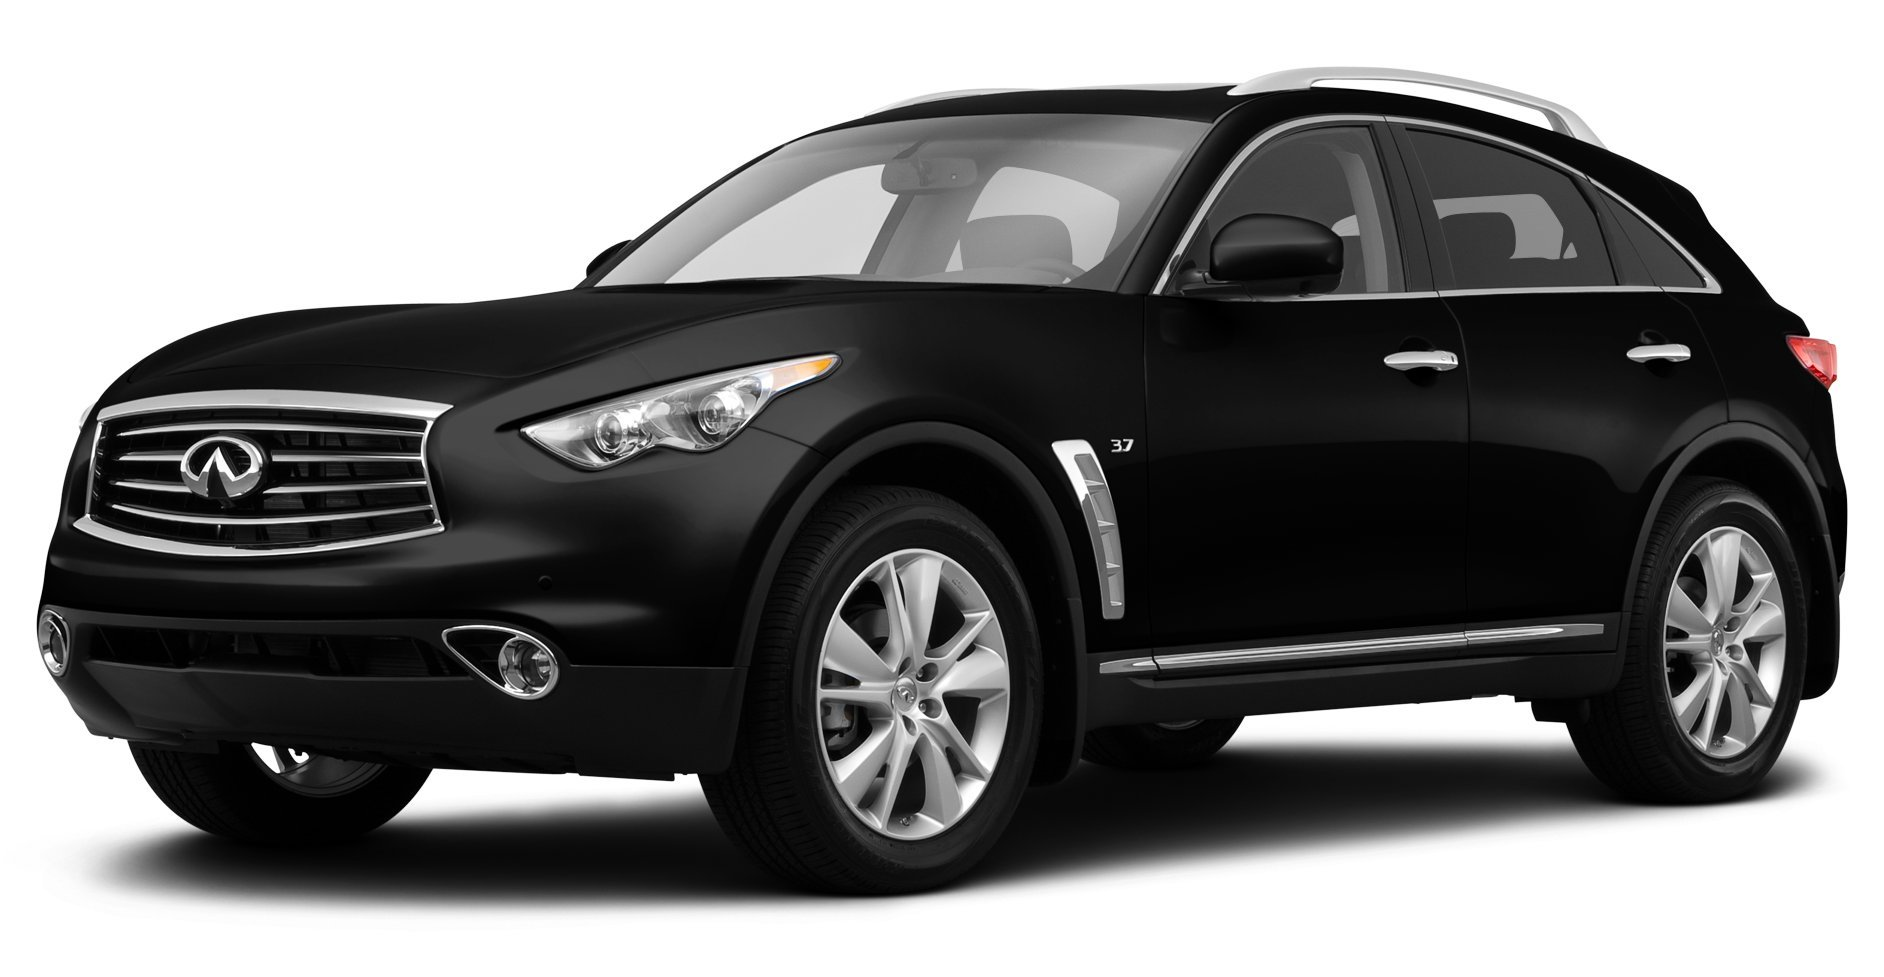 ... 2014 Infiniti QX70, Rear Wheel Drive 4-Door